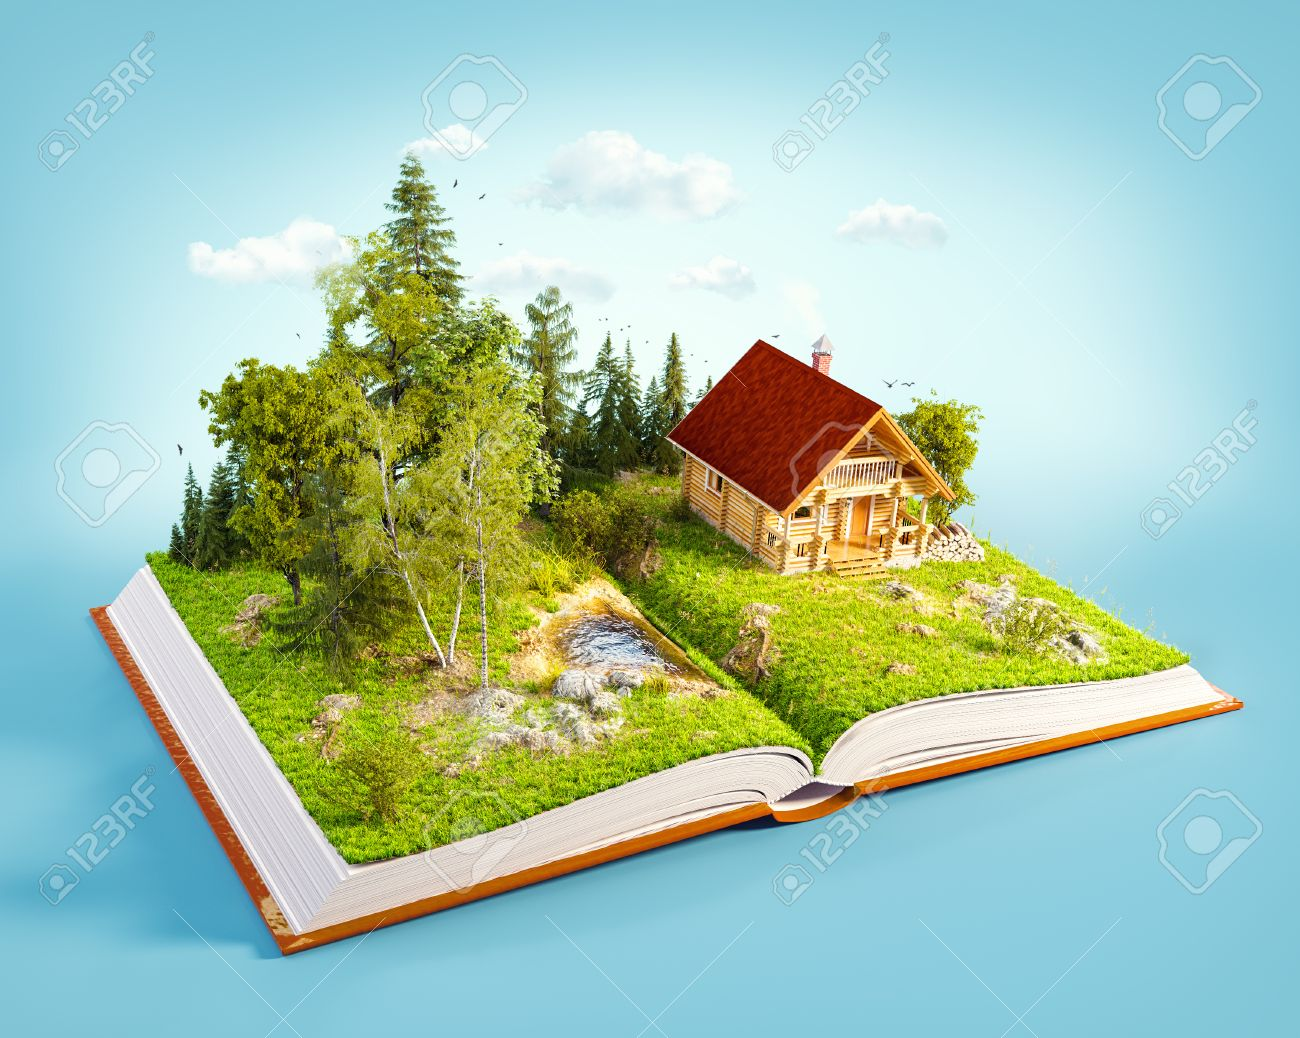 Cute countryside log house in a wonderful forest on pages of opened book. Unusual 3D illustration. Stock Illustration - 58550502